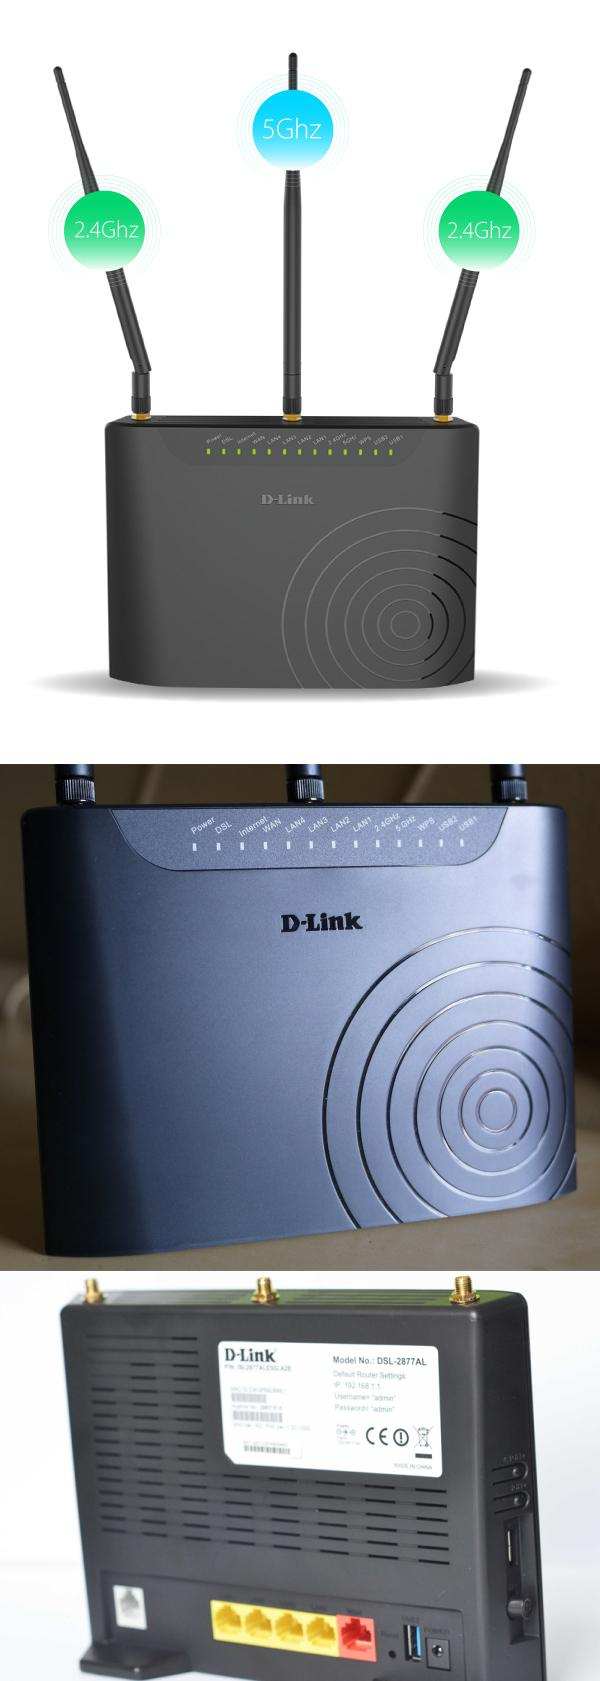 D-LINK VDSL2/ADSL Streamyx Dual Band Modem Router DSL-2877AL/9TH